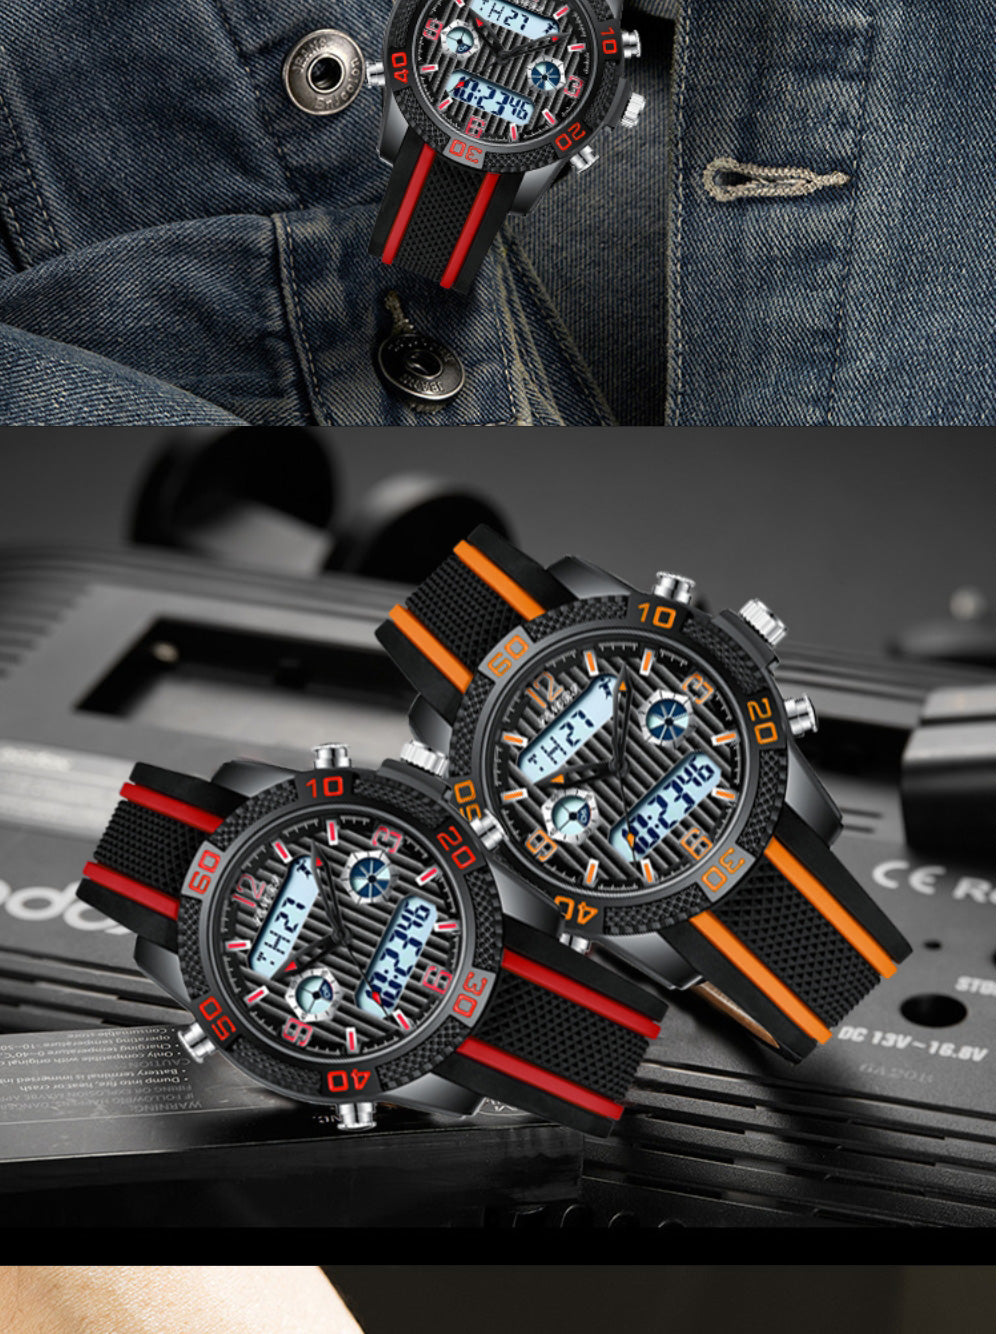 watch with digital and analog display